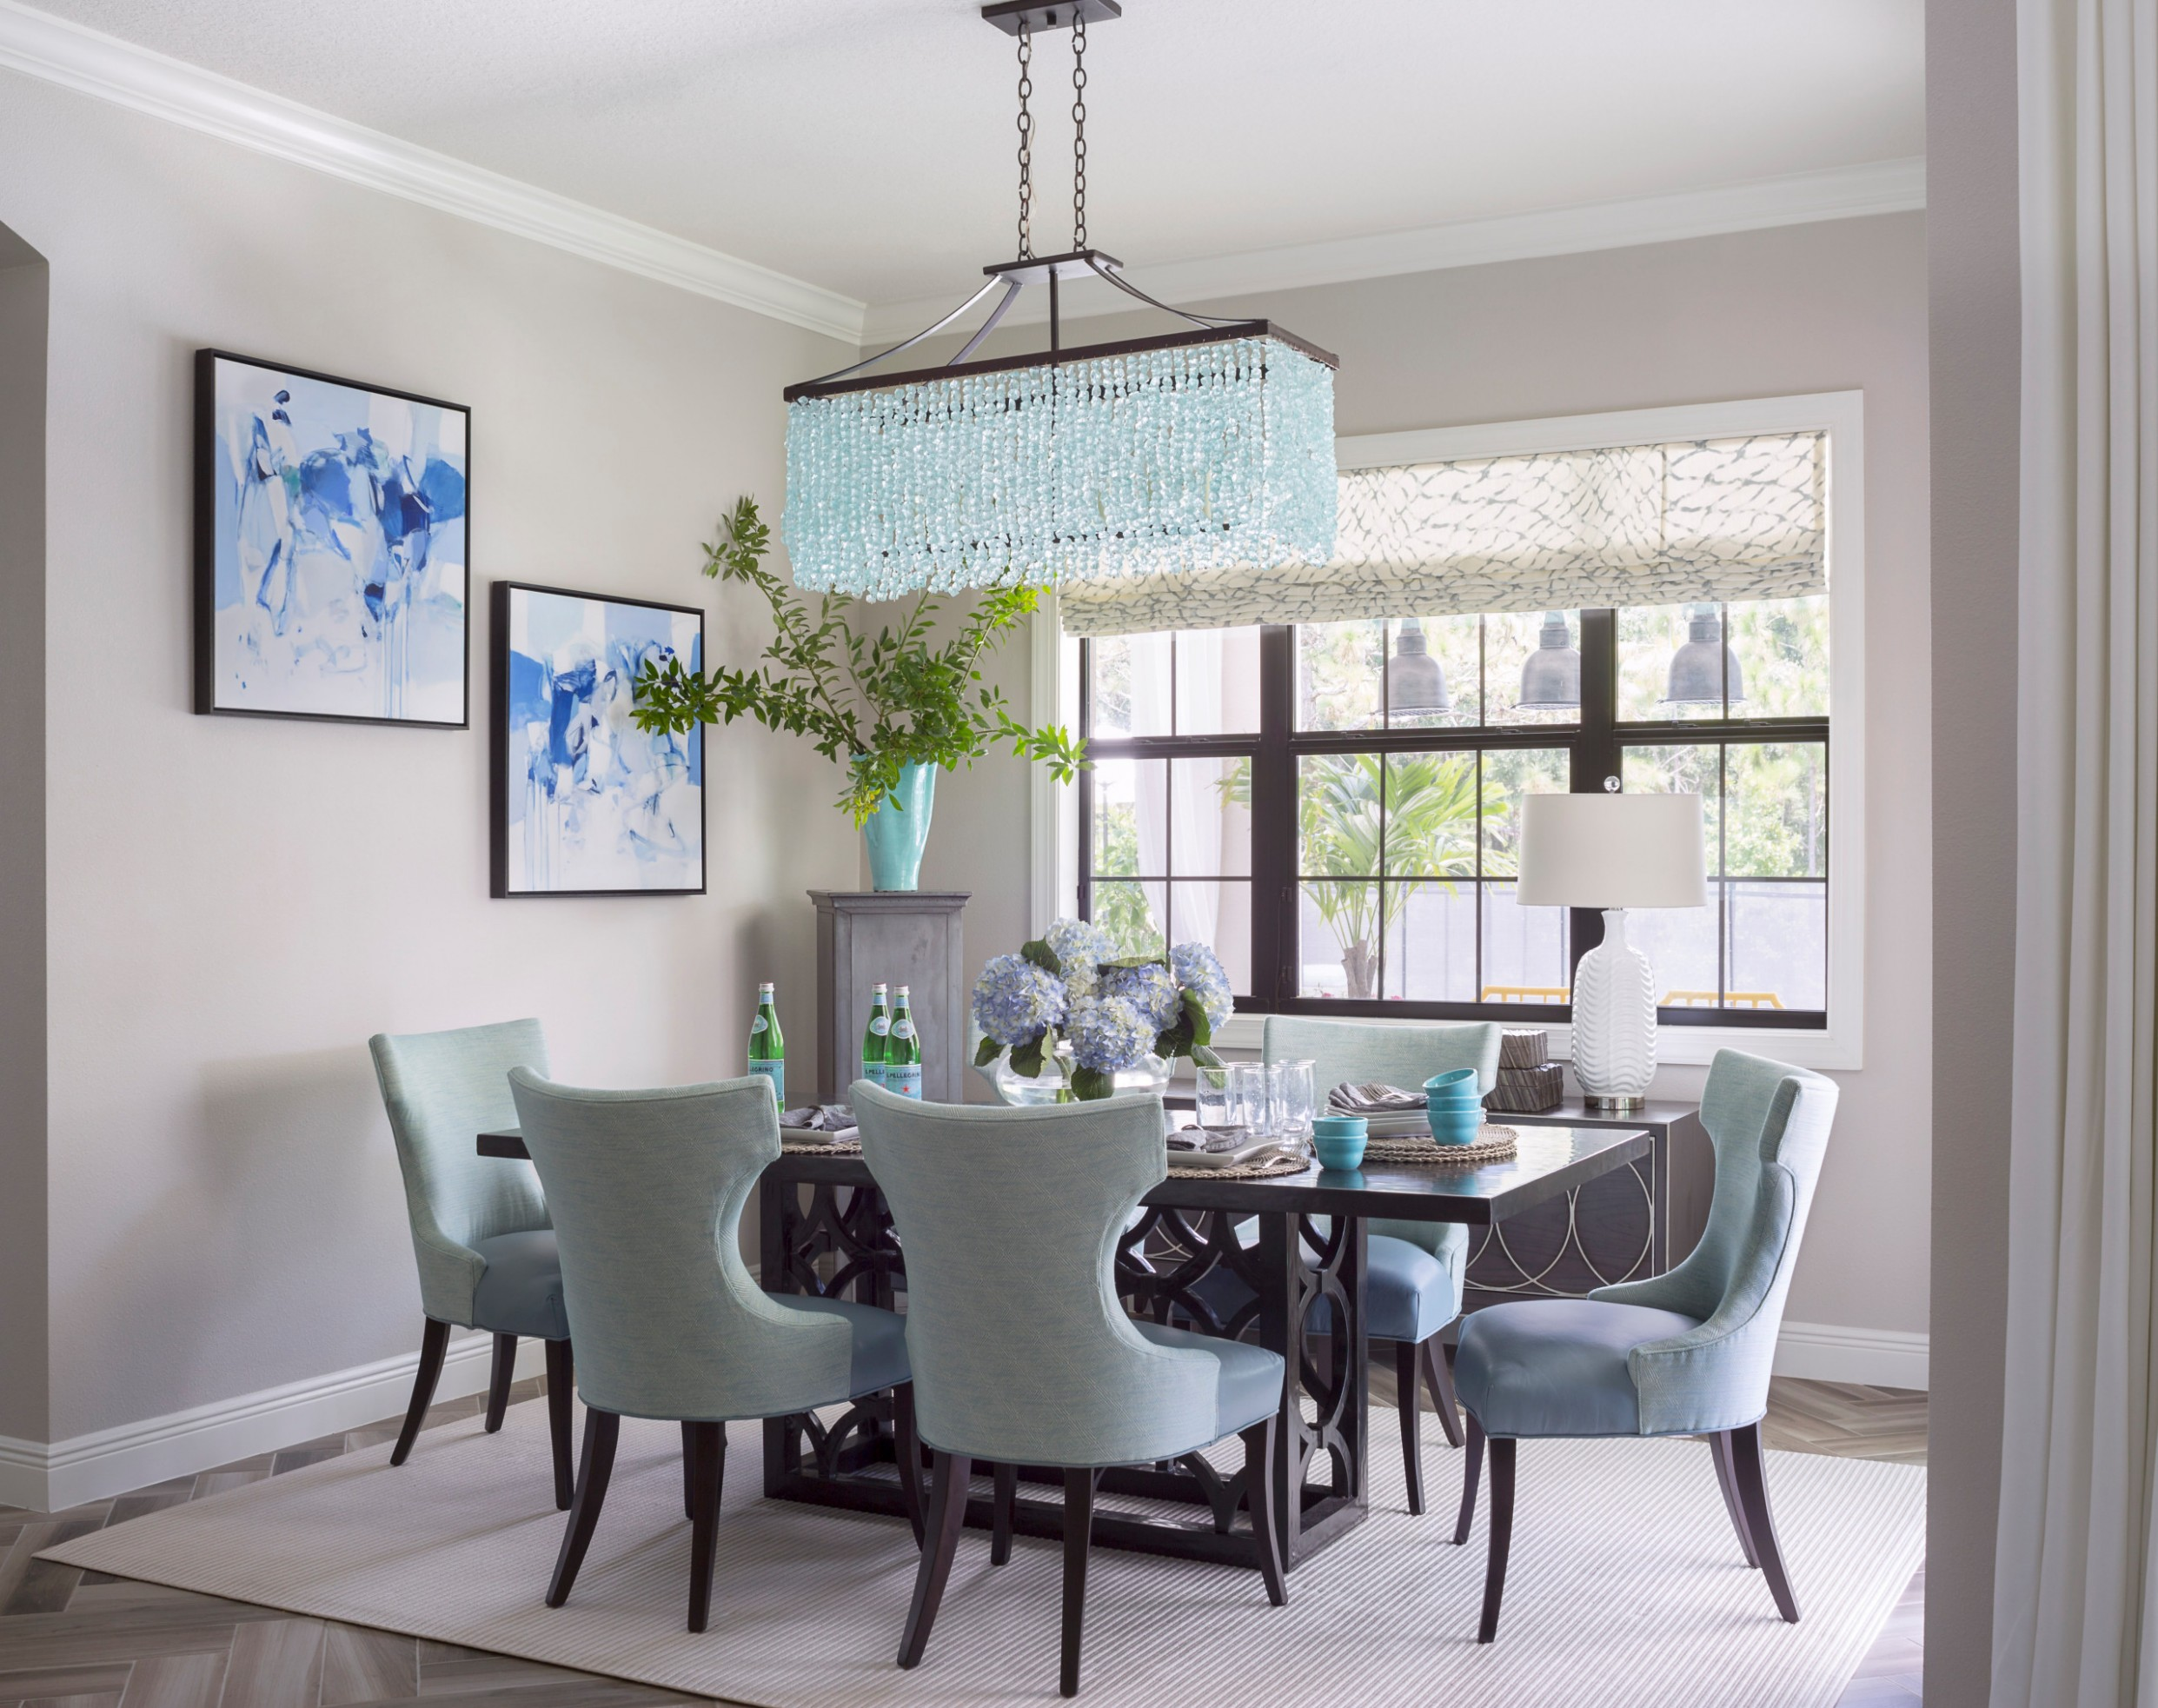 10 Beautiful Dining Room Pictures & Ideas - November, 10  Houzz - Dining Room Accessories Ideas